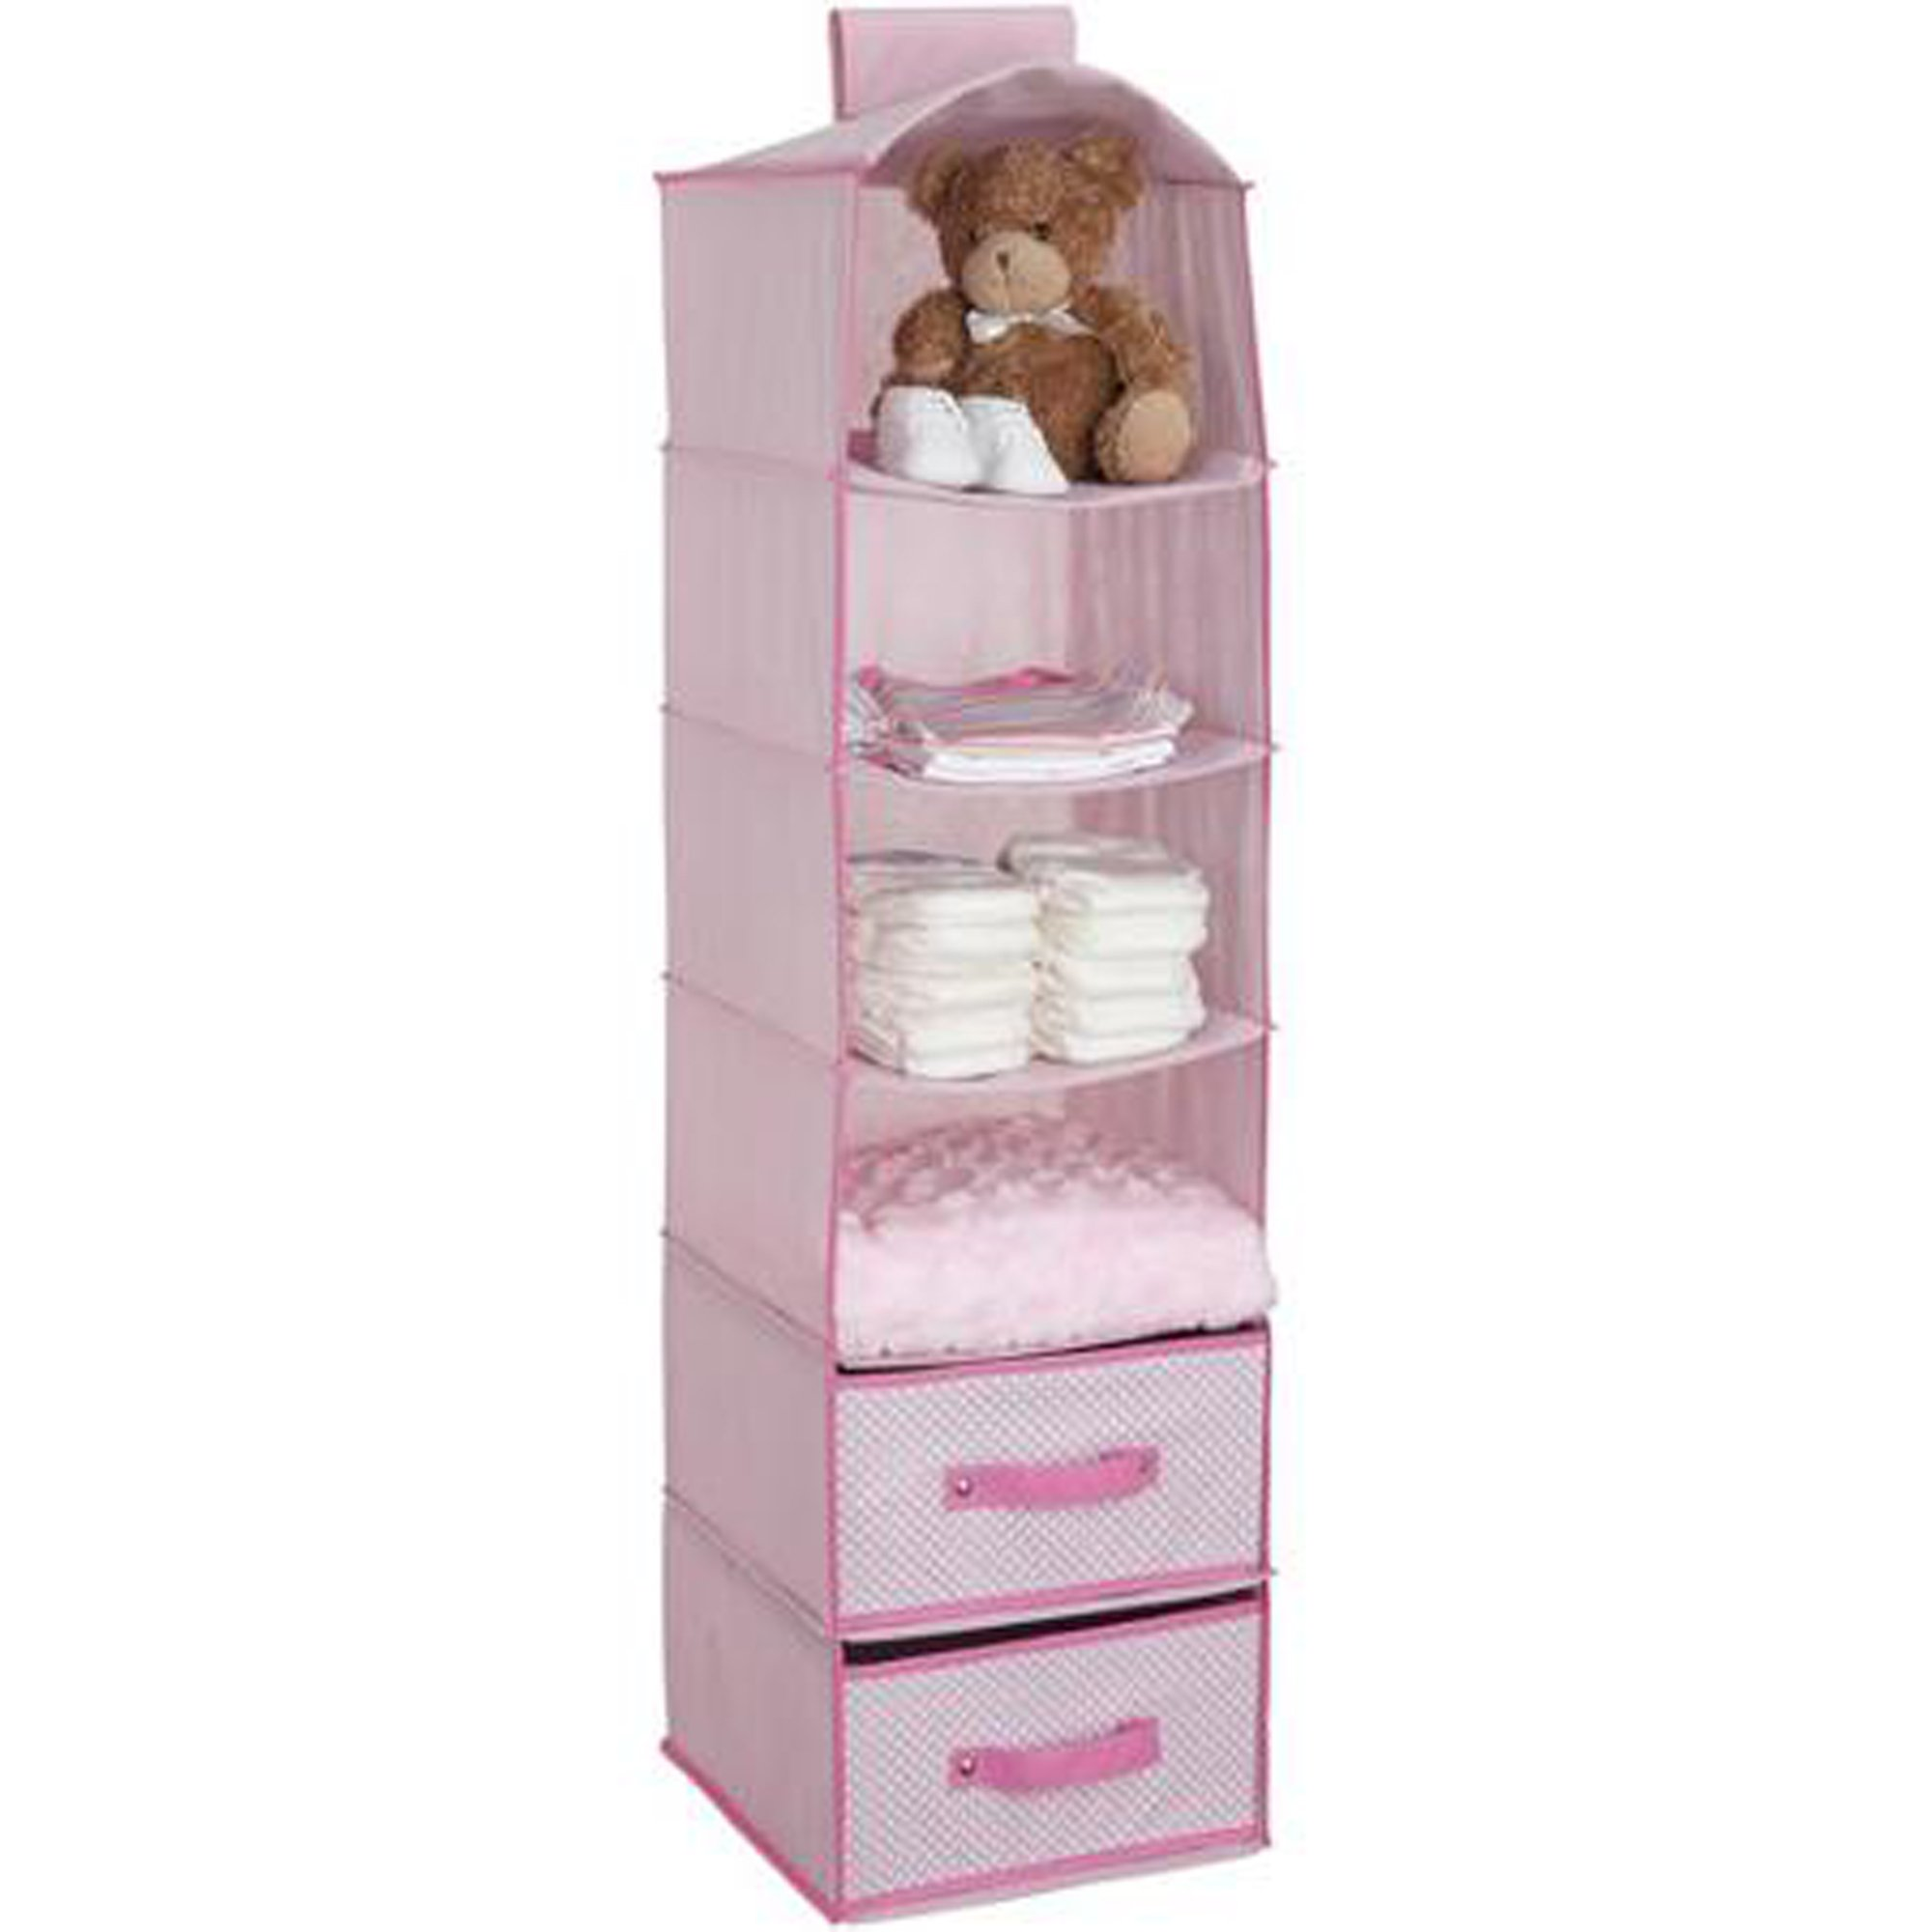 6-Shelf Hanging Storage Unit with 2 Drawers Barely Pink Children Closet Hanging Storage Shelves Delta Kids Vertical Closet Rack Nursery Heavy-duty Fabric Velcro Top Bedroom Easy Install by Delta Children